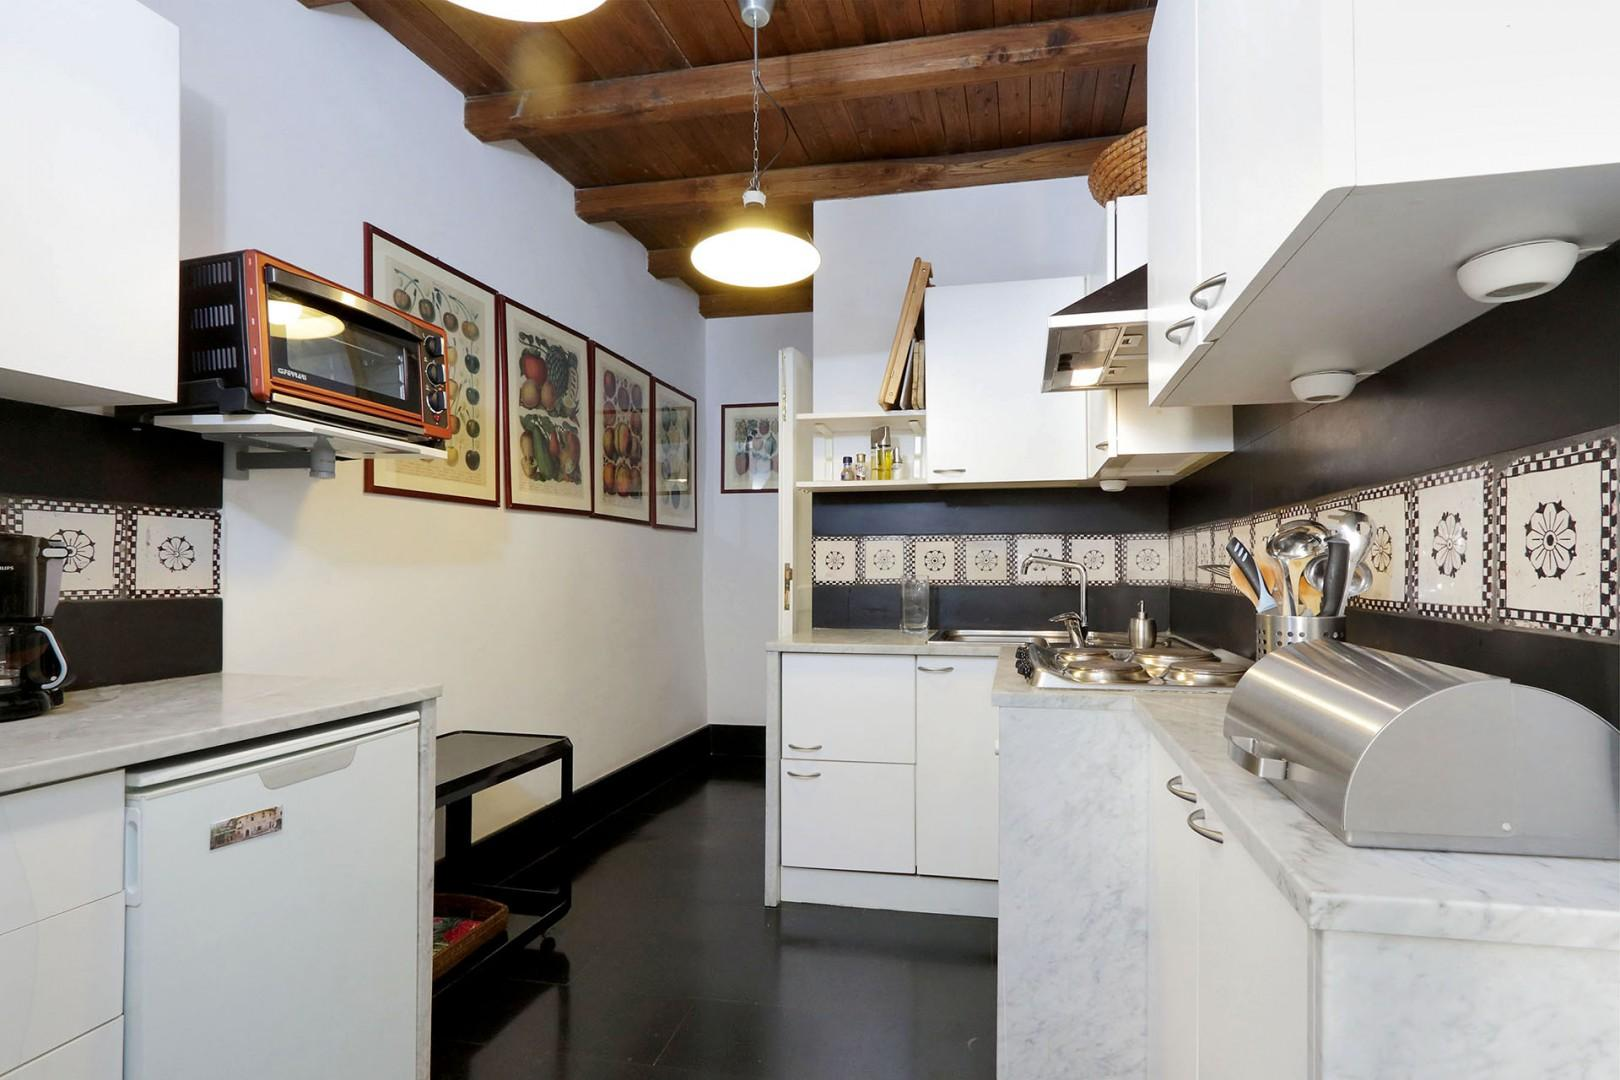 Colorful prints on the kitchen walls are echoed in the antique Italian tiles that line the walls.